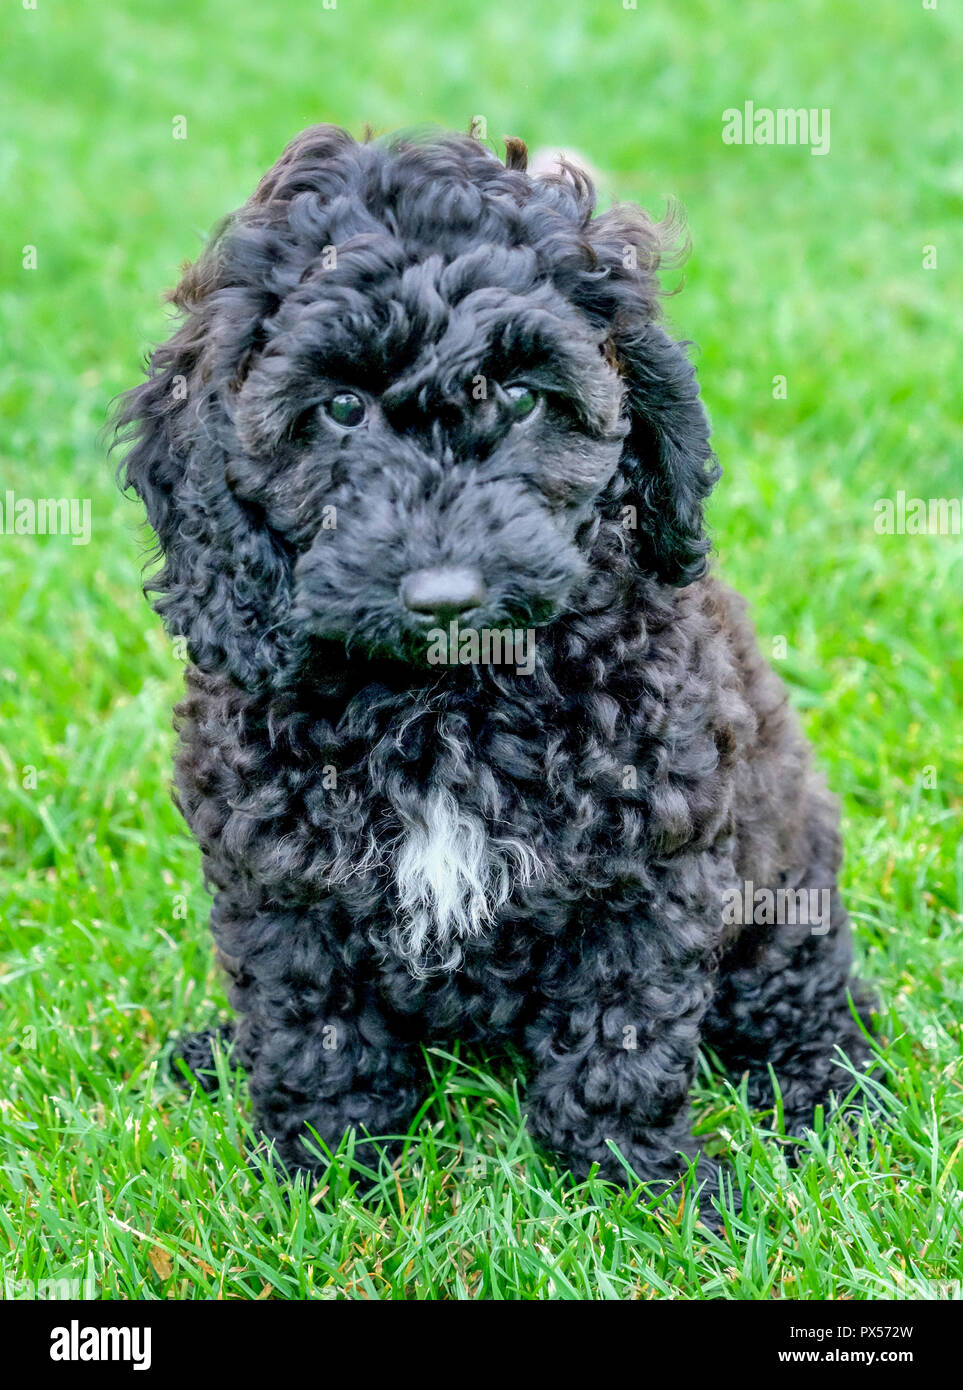 Curly Haired White Poodle Stock Photos & Curly Haired White